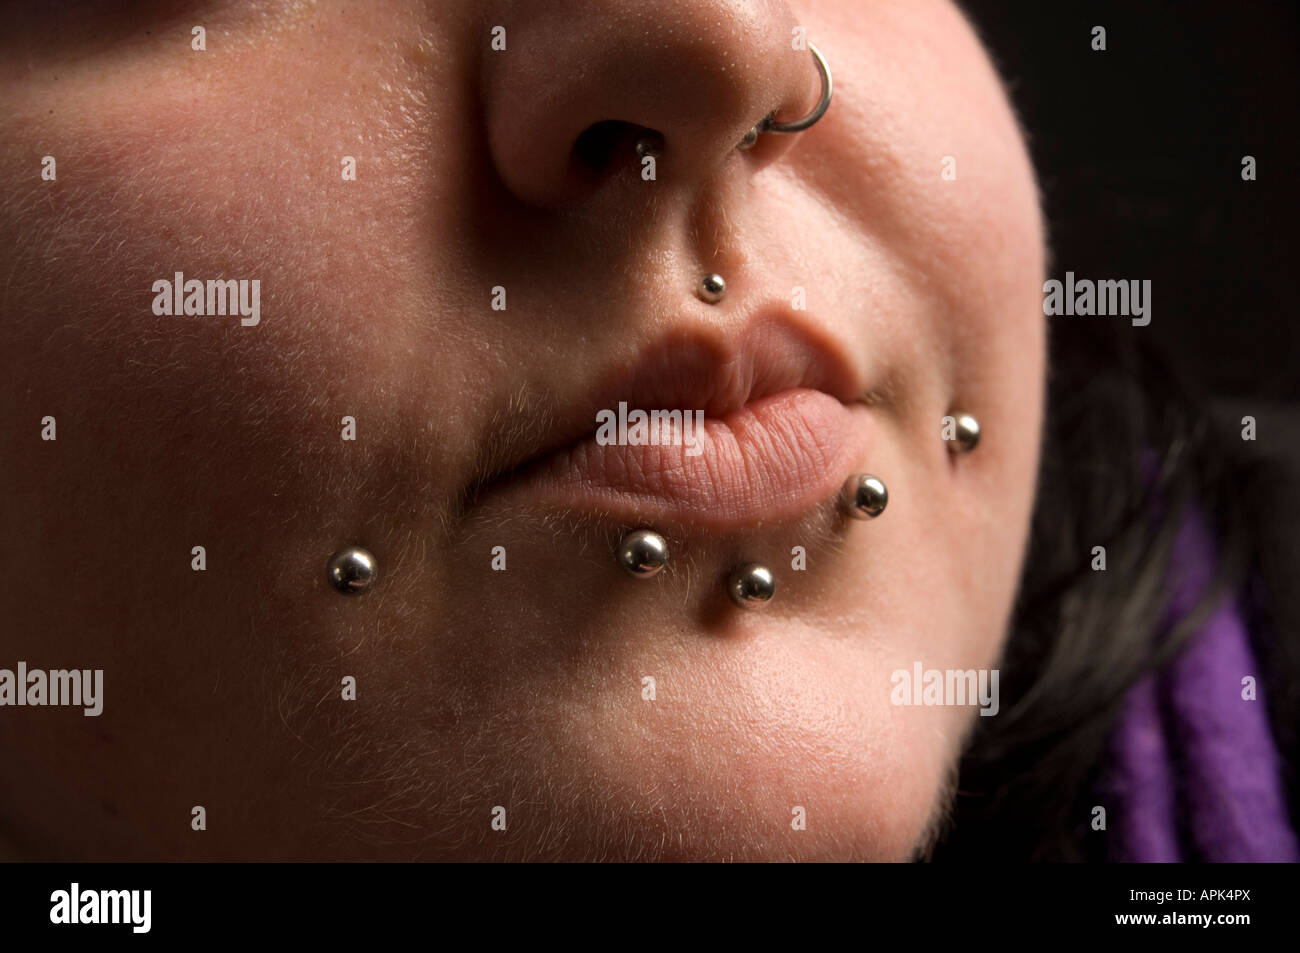 close up of the lips and chin of a young welsh woman with multiple facial piercings Stock Photo